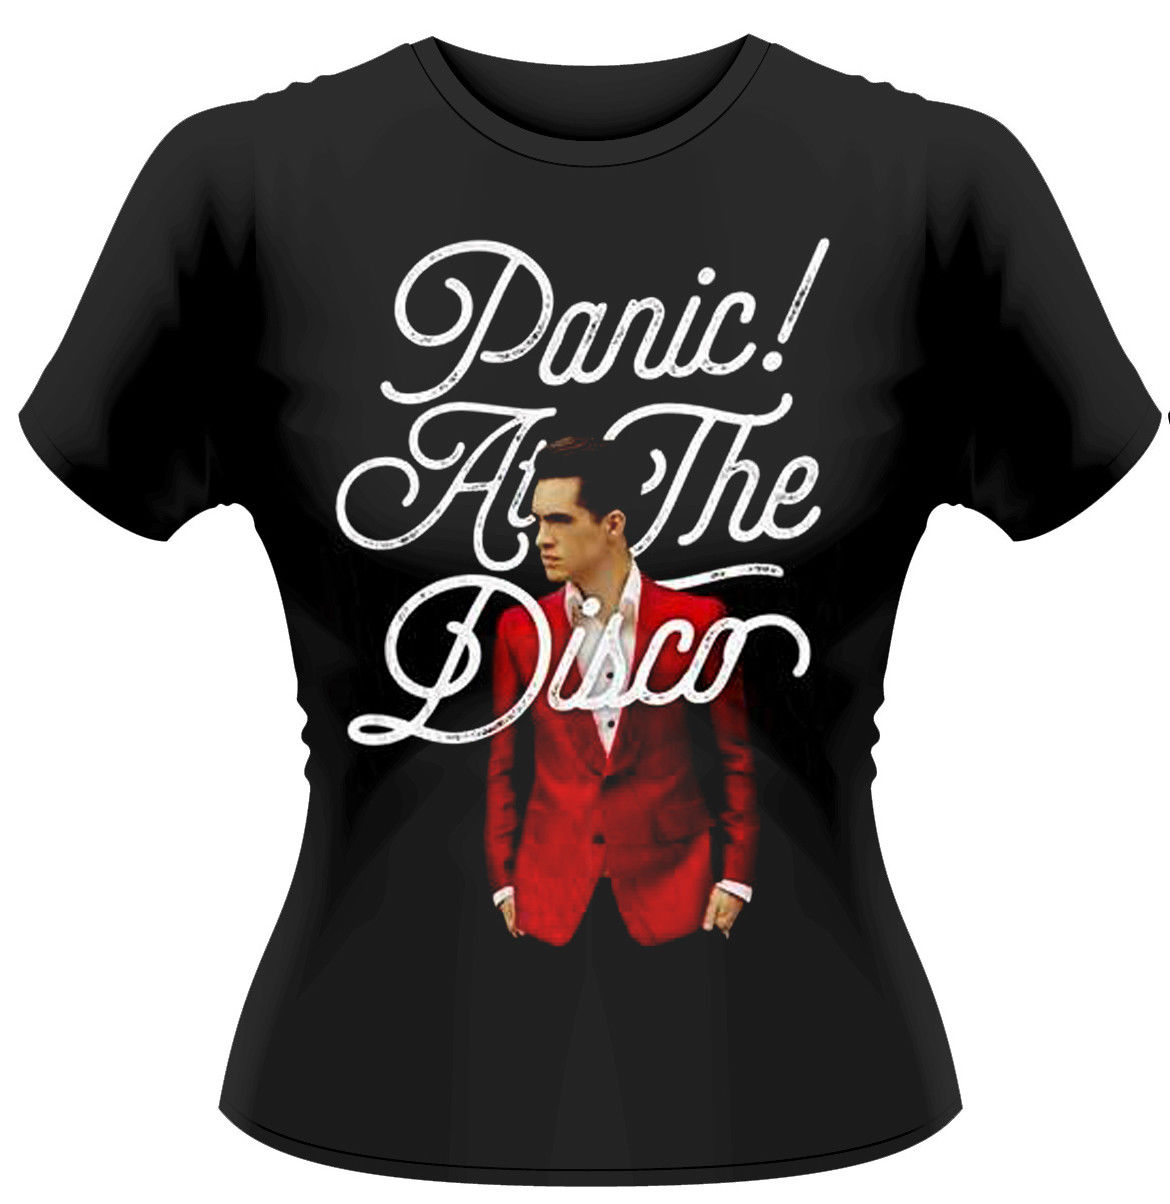 Panic! At The Disco BRENDON URIE Donna T-shirt ADERENTE - NUOVO E ORIGINALE 2018 Hot New Summer Women T Shirt Top Tee